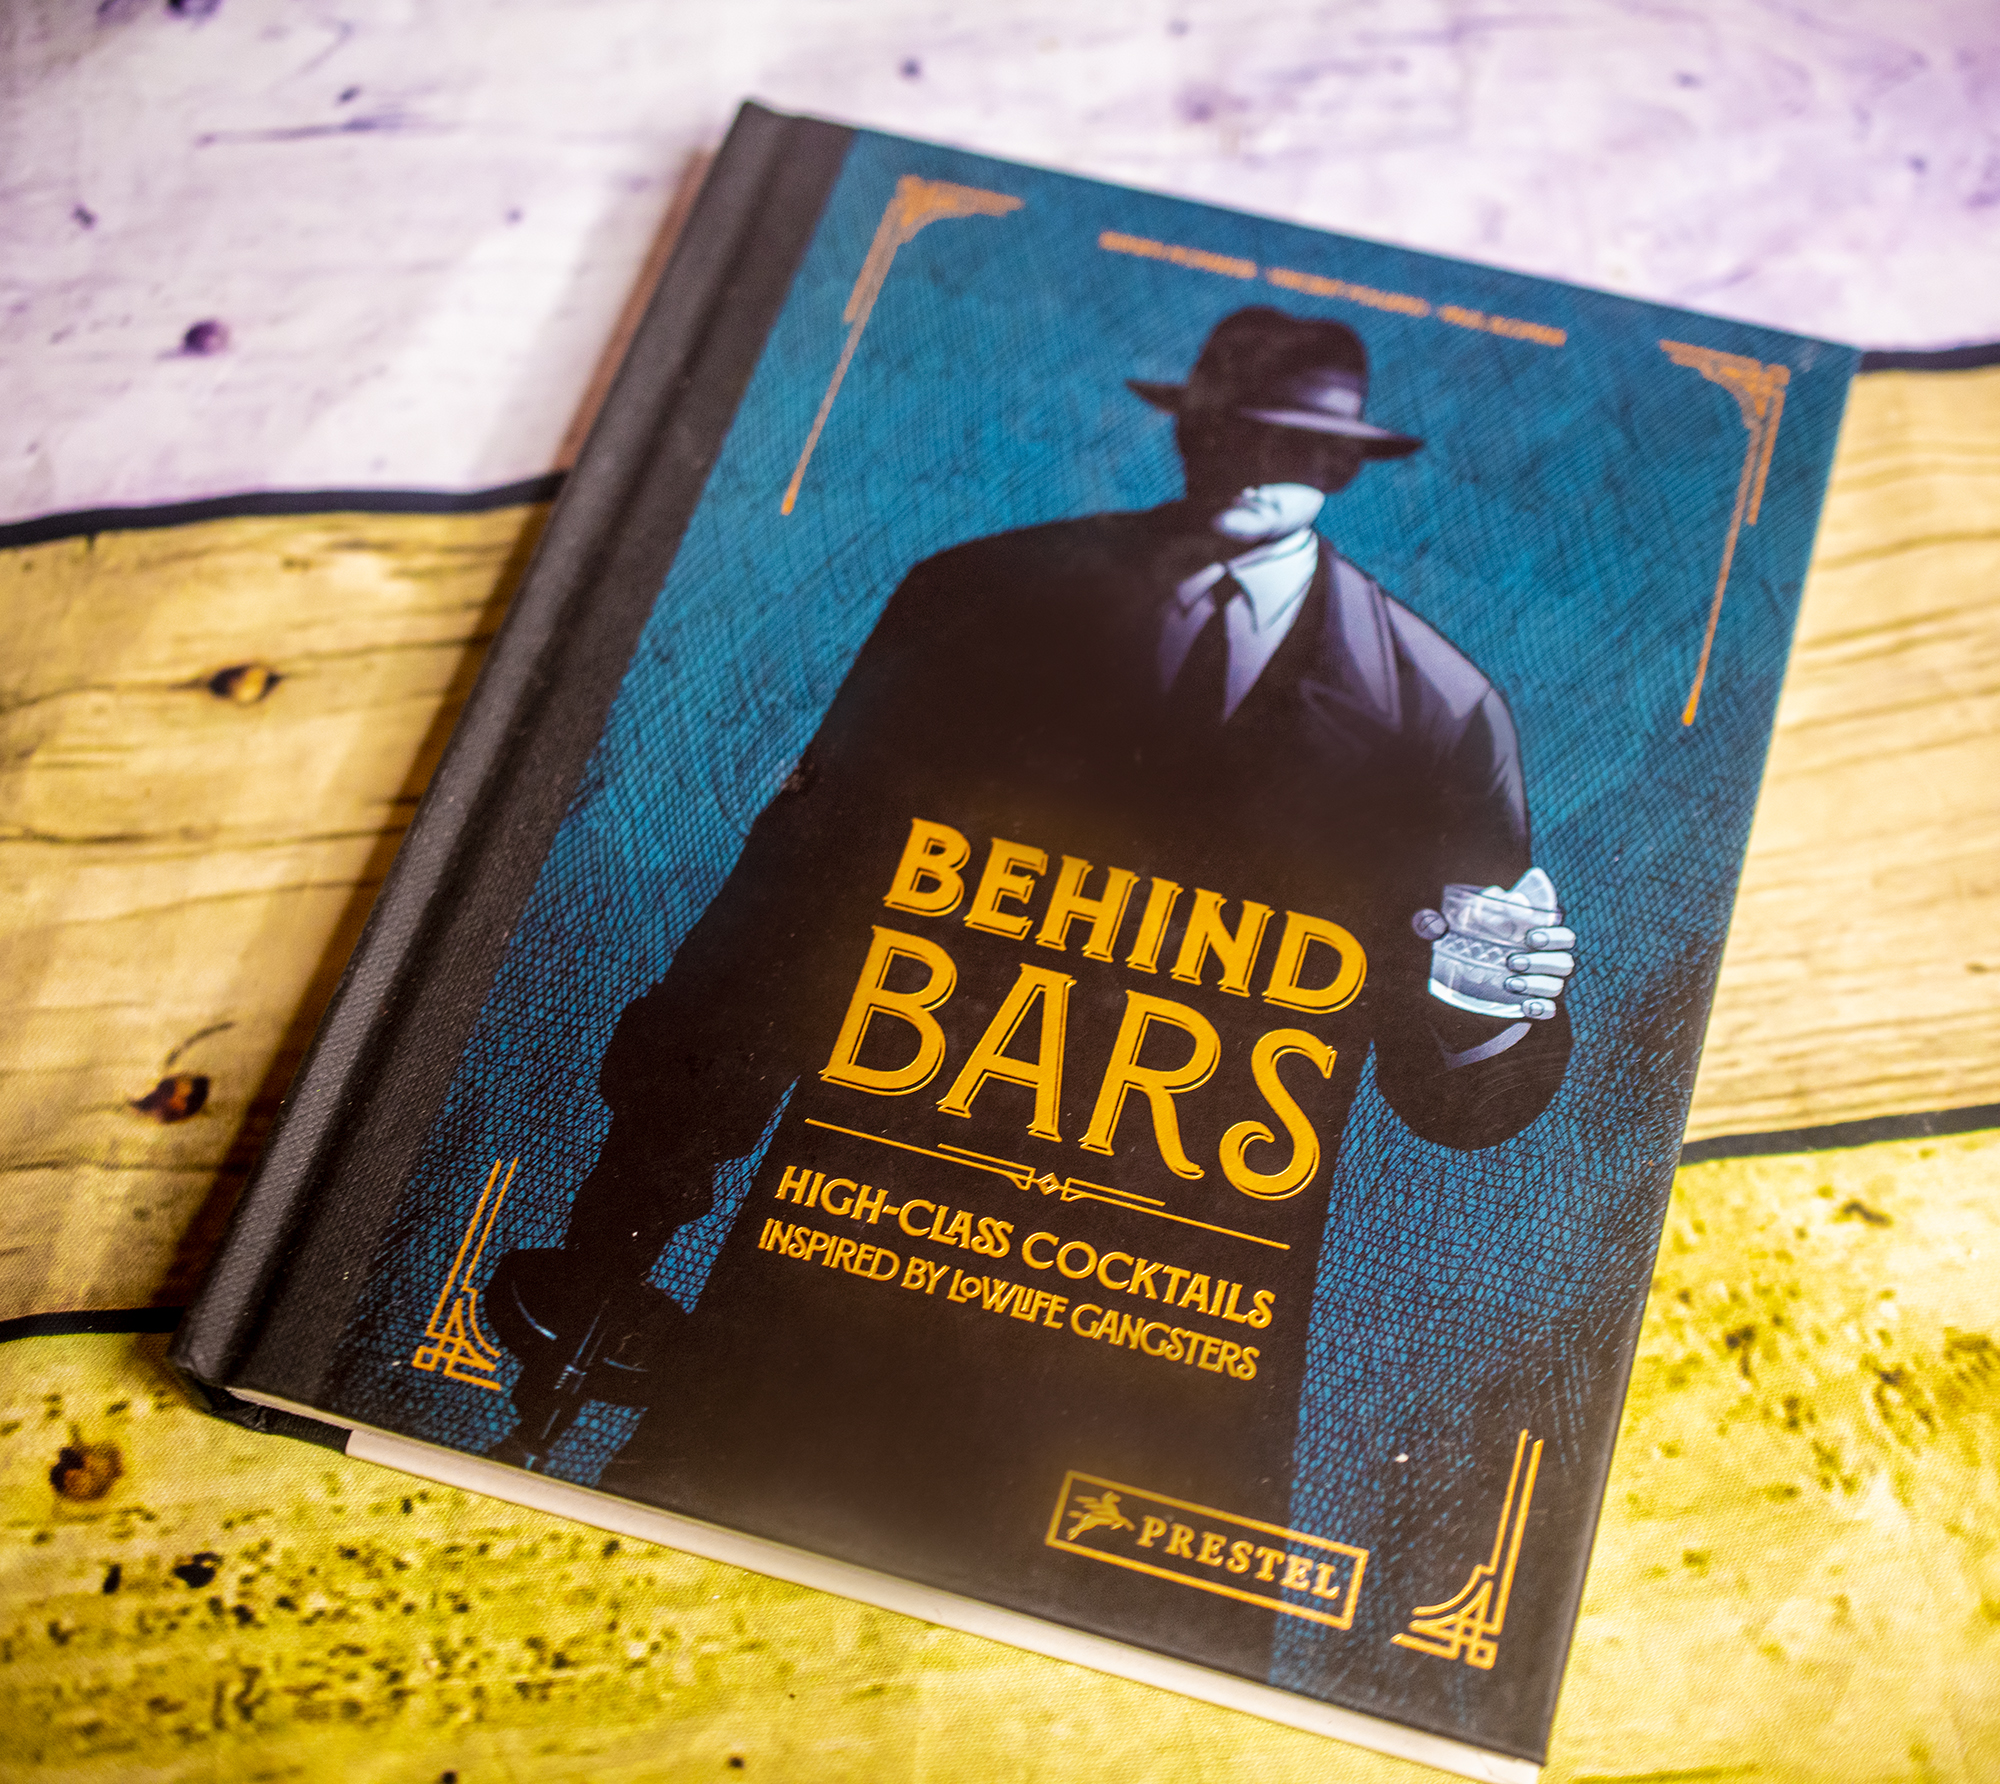 behind-bars-cocktail-book